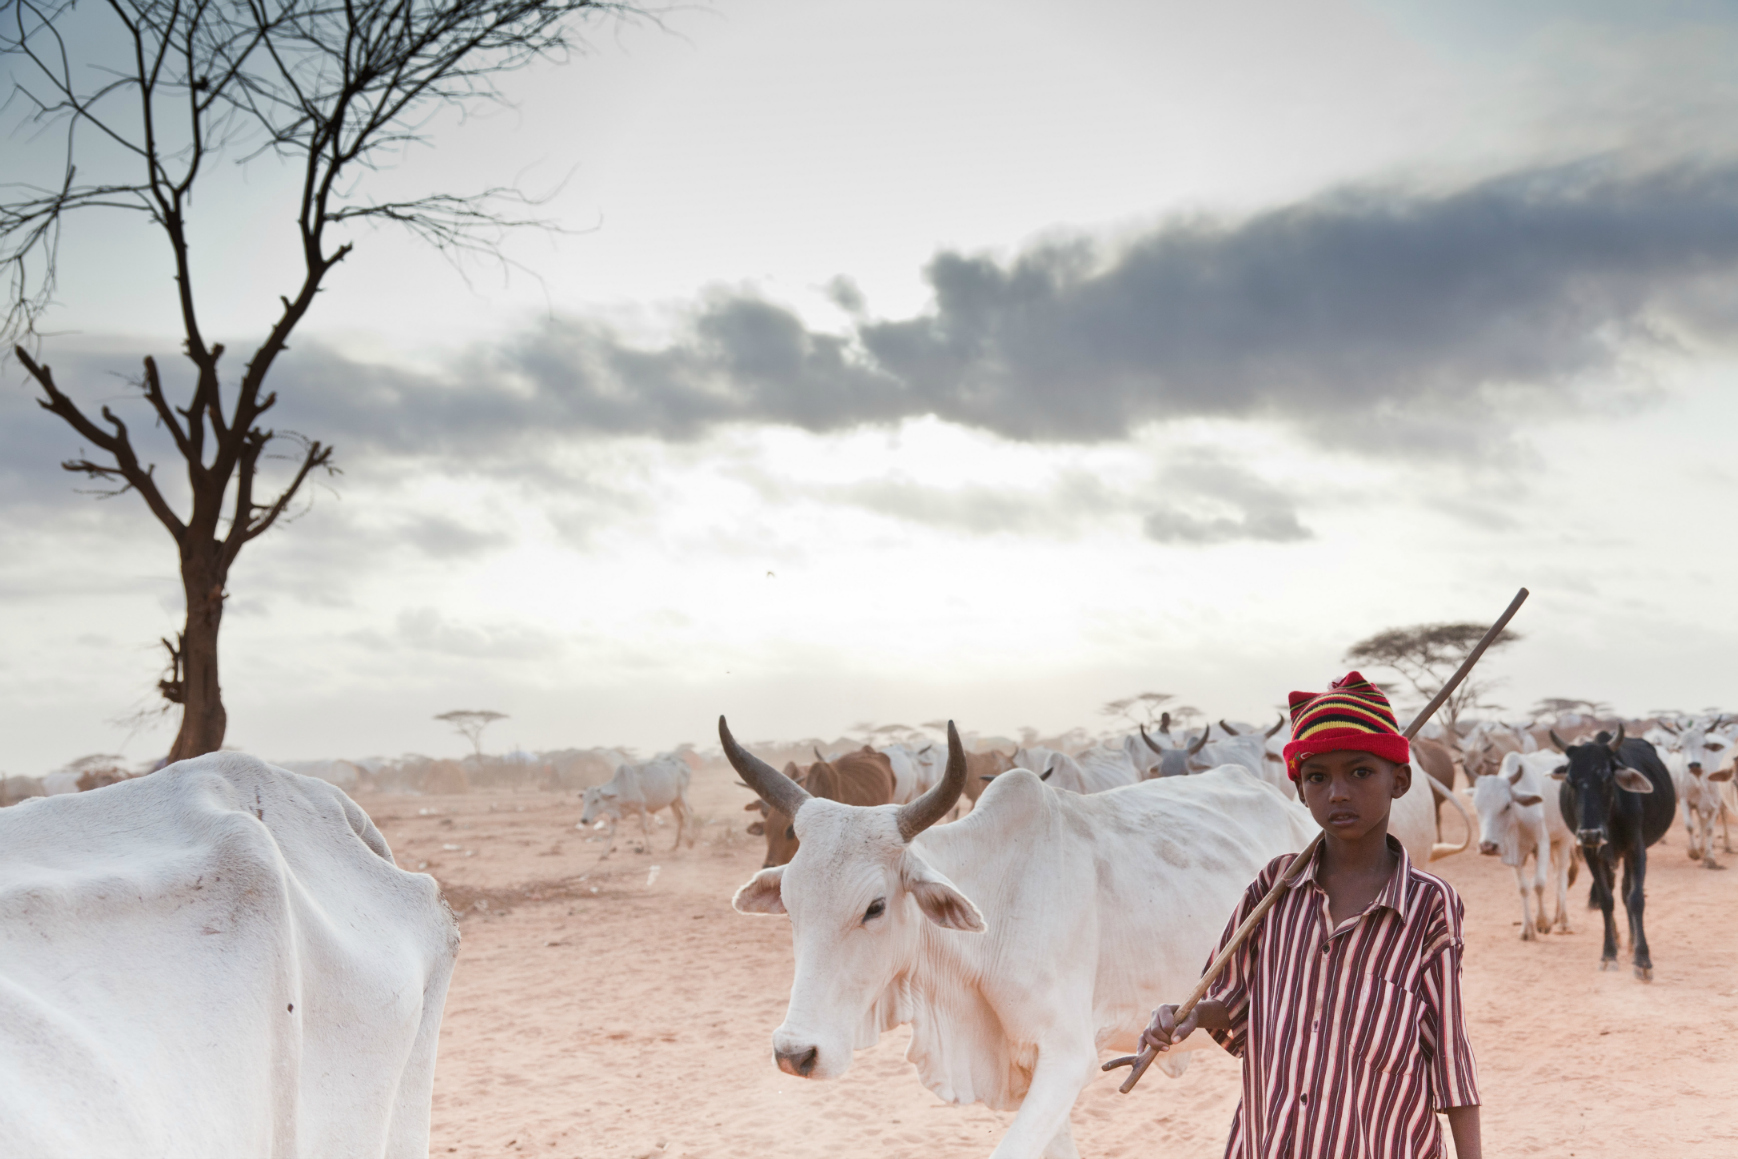 A young boy taking bone-thin cattle in search of pasture at the edge of Dagahaley refugee camp in Kenya. Many Somali refugees have lost their animals in the prolonged drought. Image:brendanbannon.com